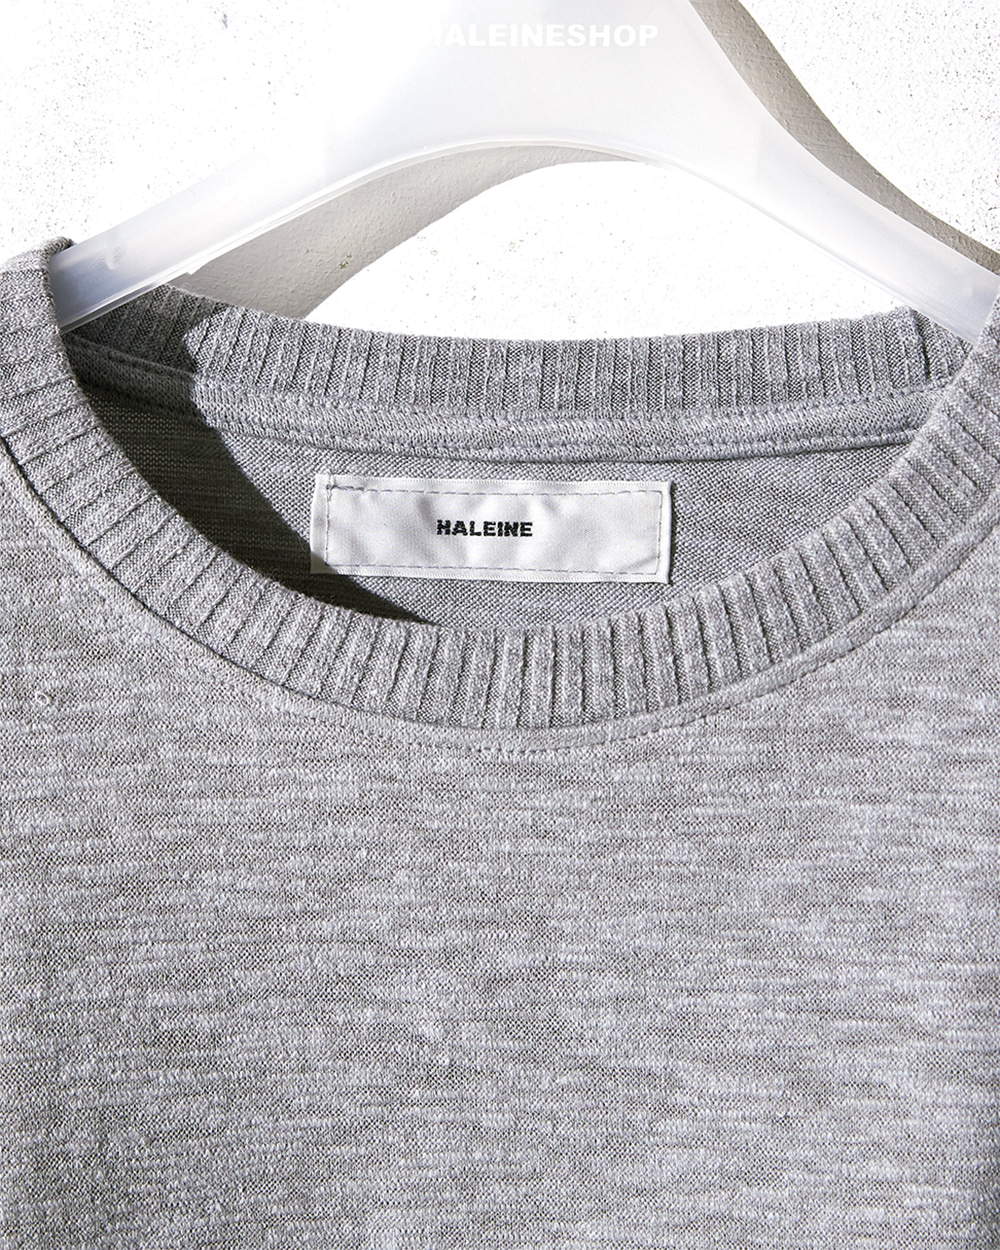 HALEINE알렌느 GREY knit t-shirts(NT027)